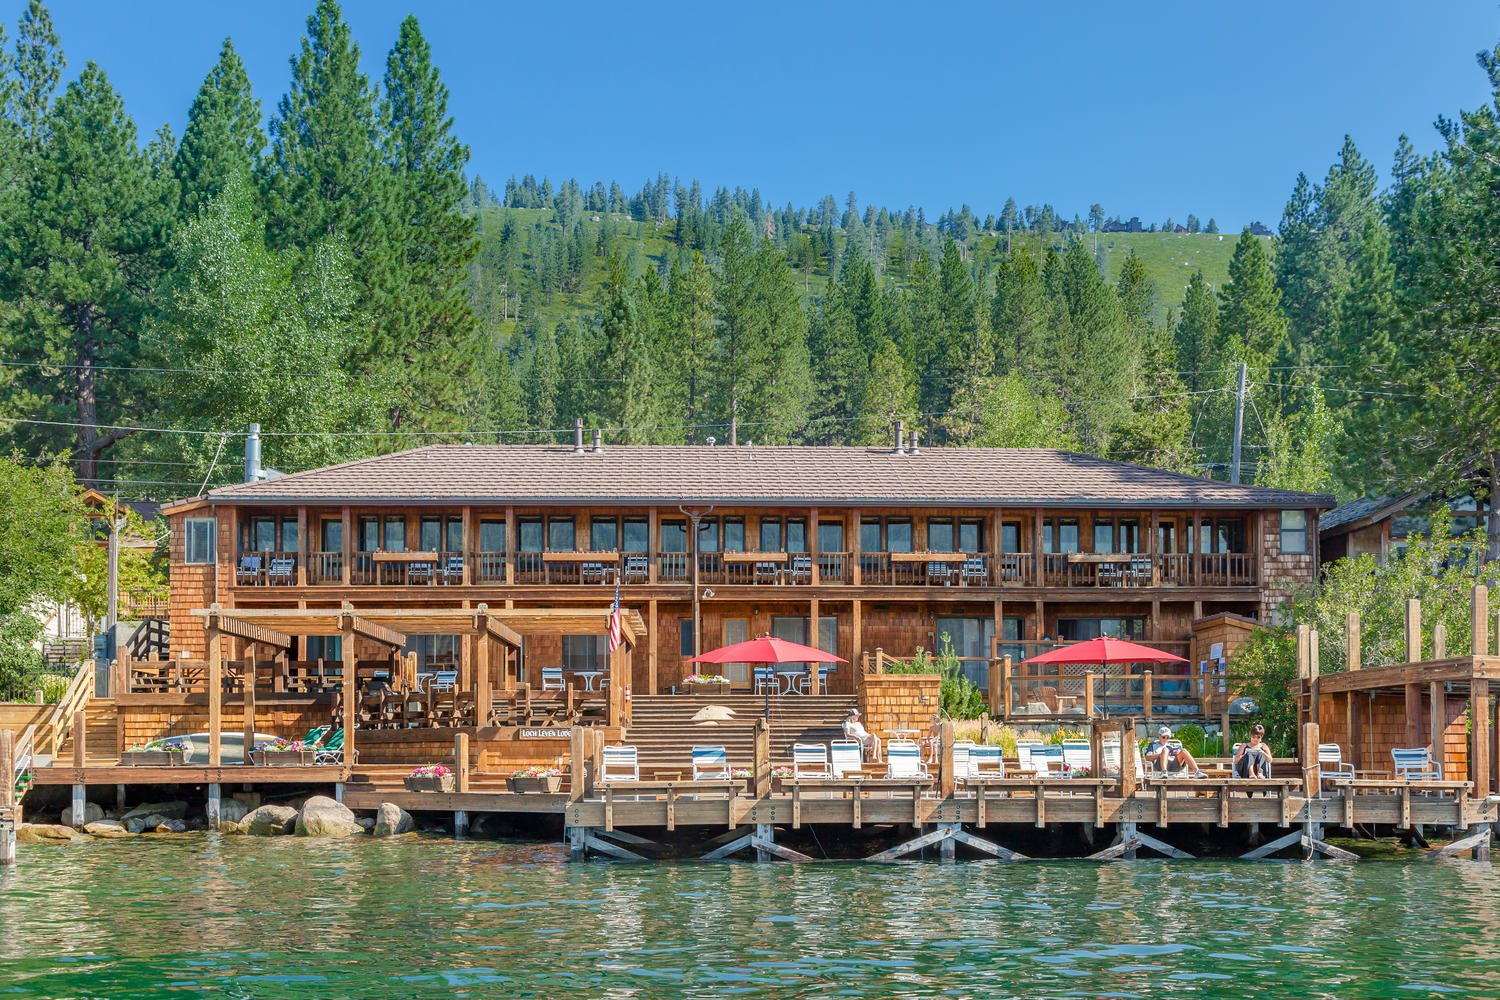 Loch Leven Lodge as seen from Donner Lake in Truckee-Tahoe.